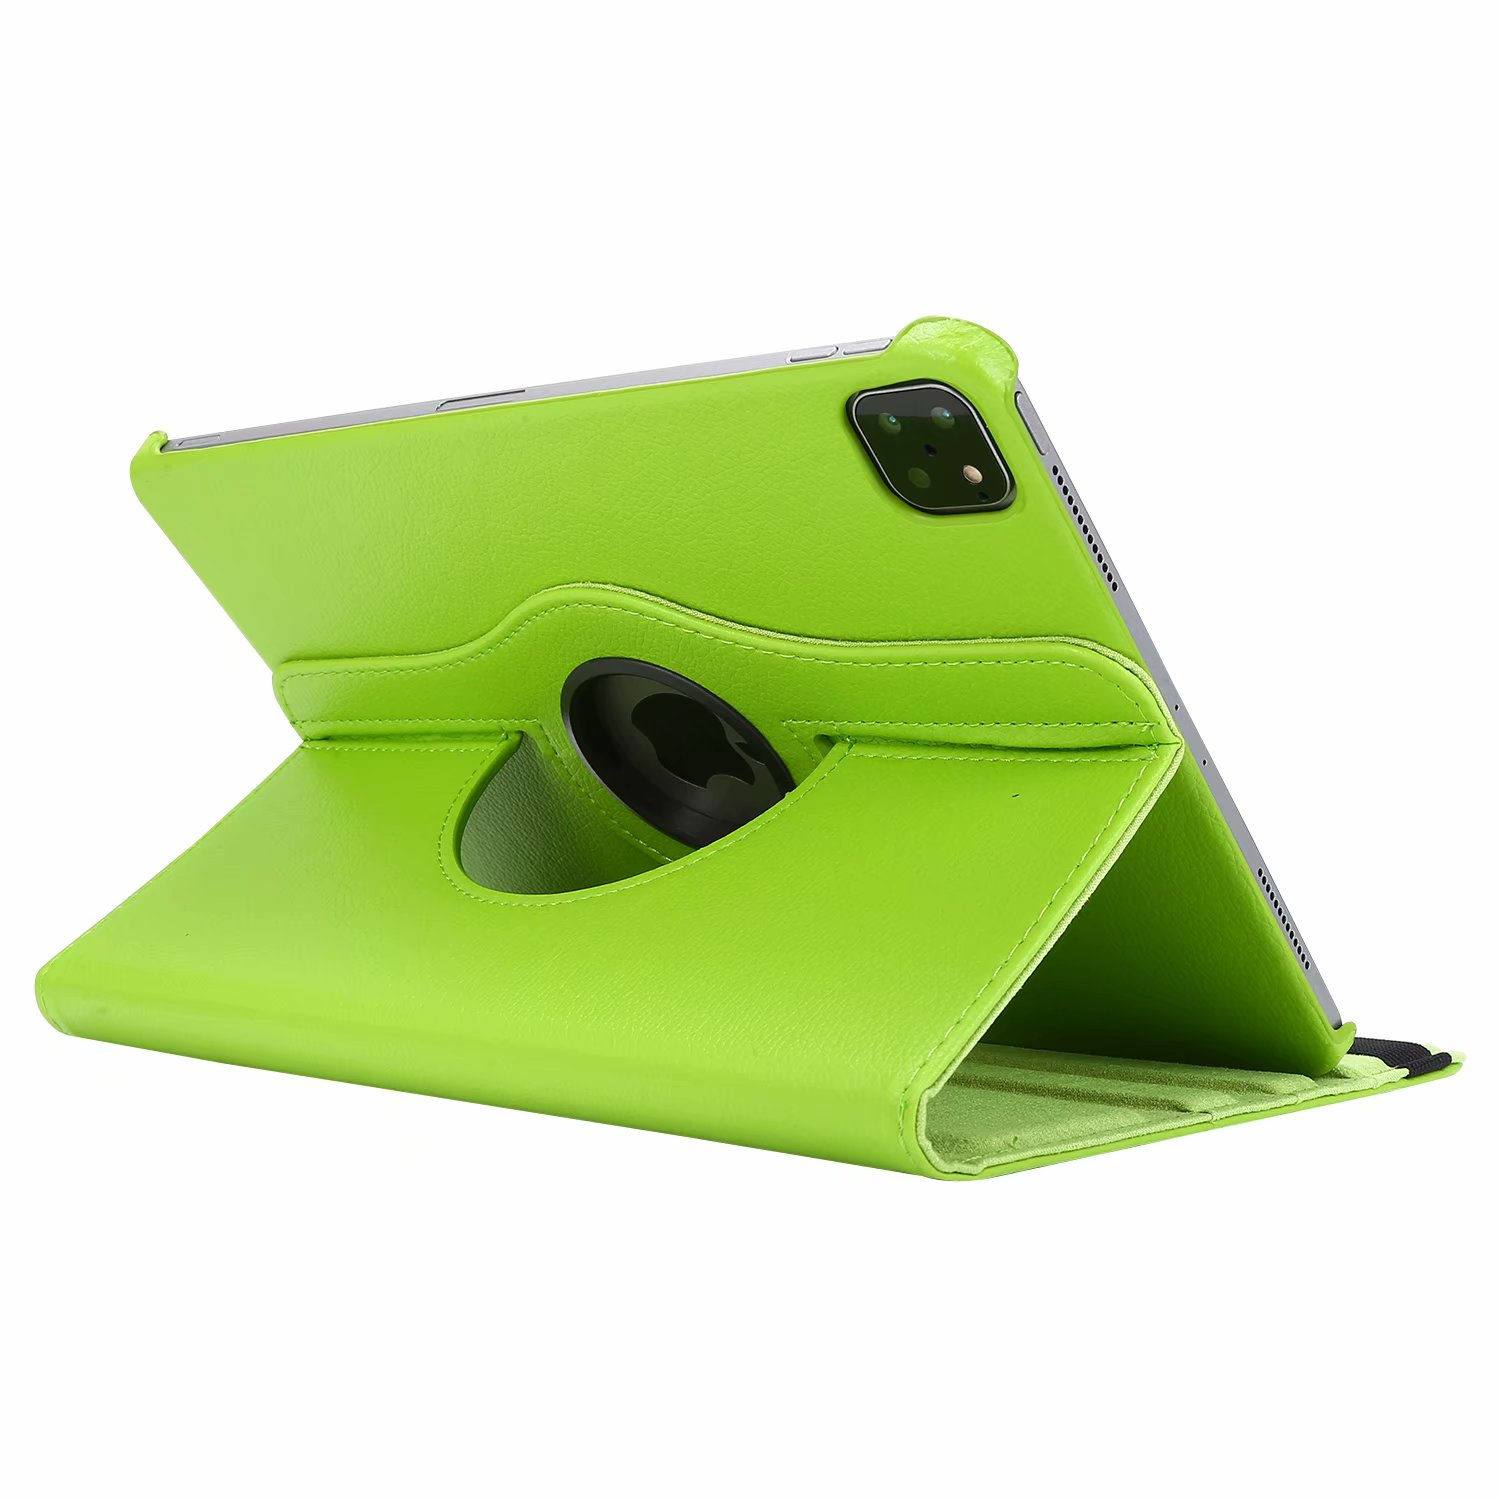 Green Green Case for iPad Pro 11 Cover 2021 2020 2018 A2228 A2068 A2230 A2013 A1934 A1980 360